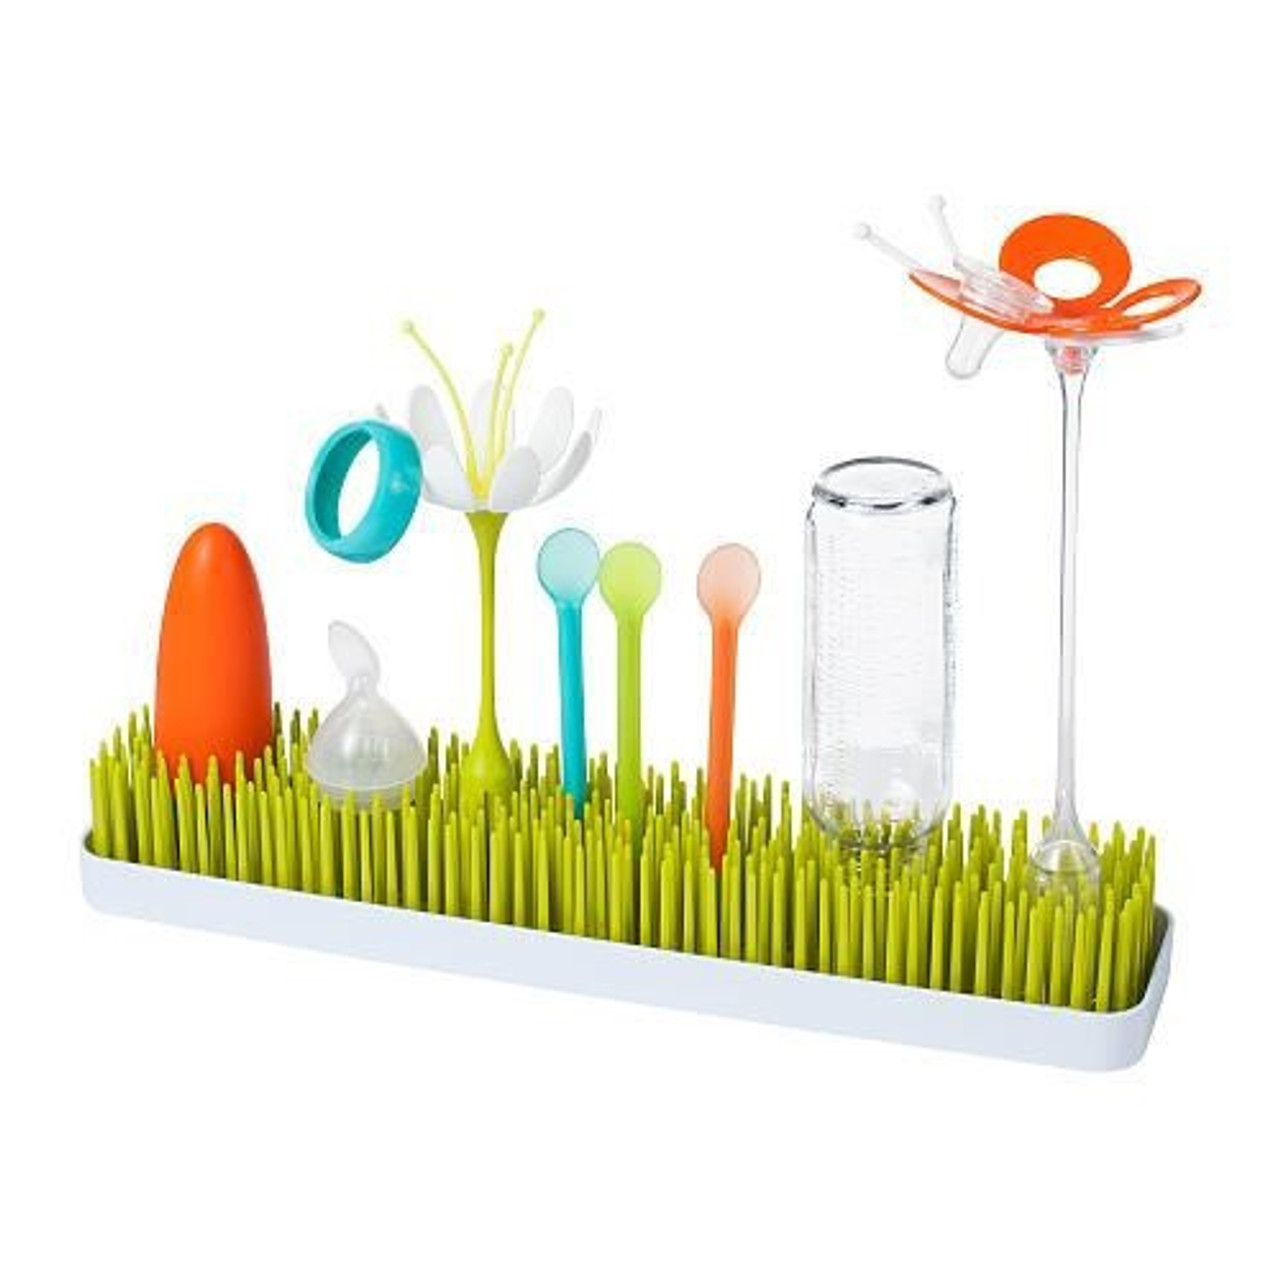 Boon Fly Drying Rack Accessories - Orange